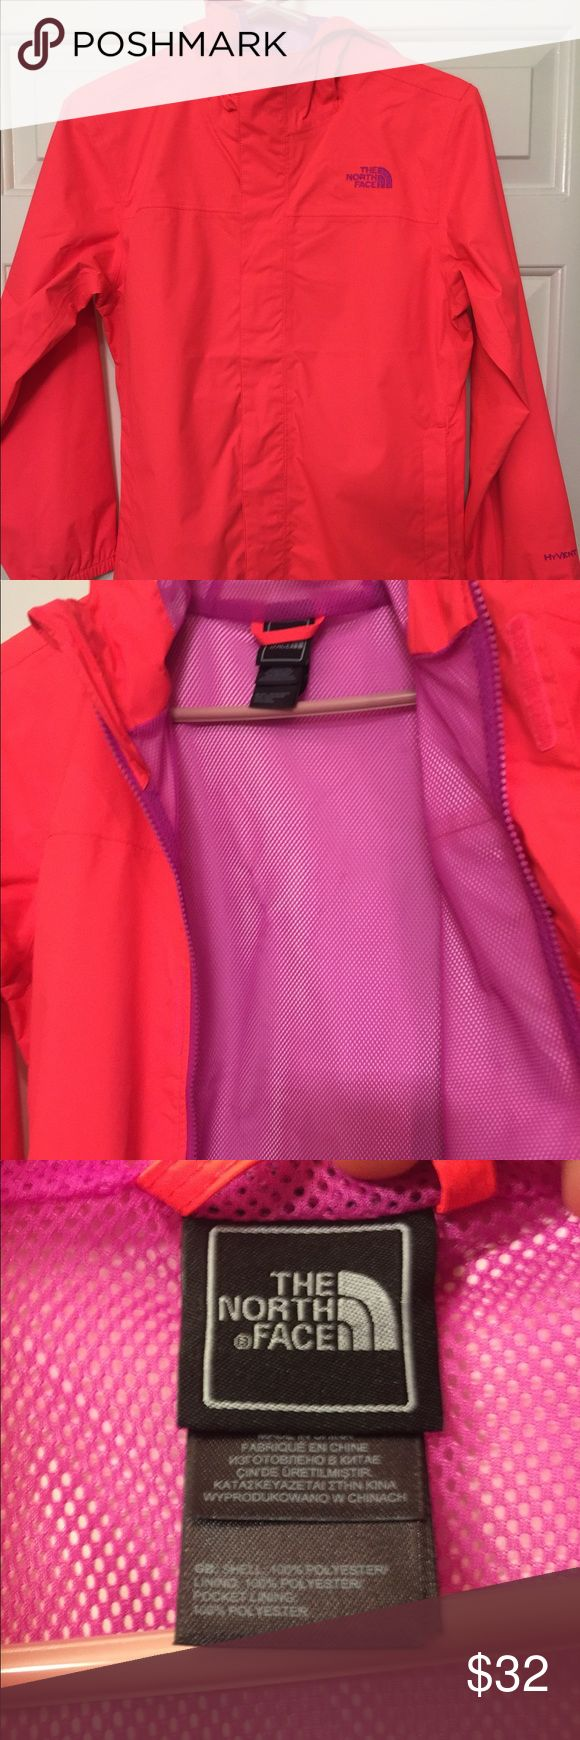 North face windbreaker Brand new girls Northface. Size 14/16 L. North Face Jackets & Coats